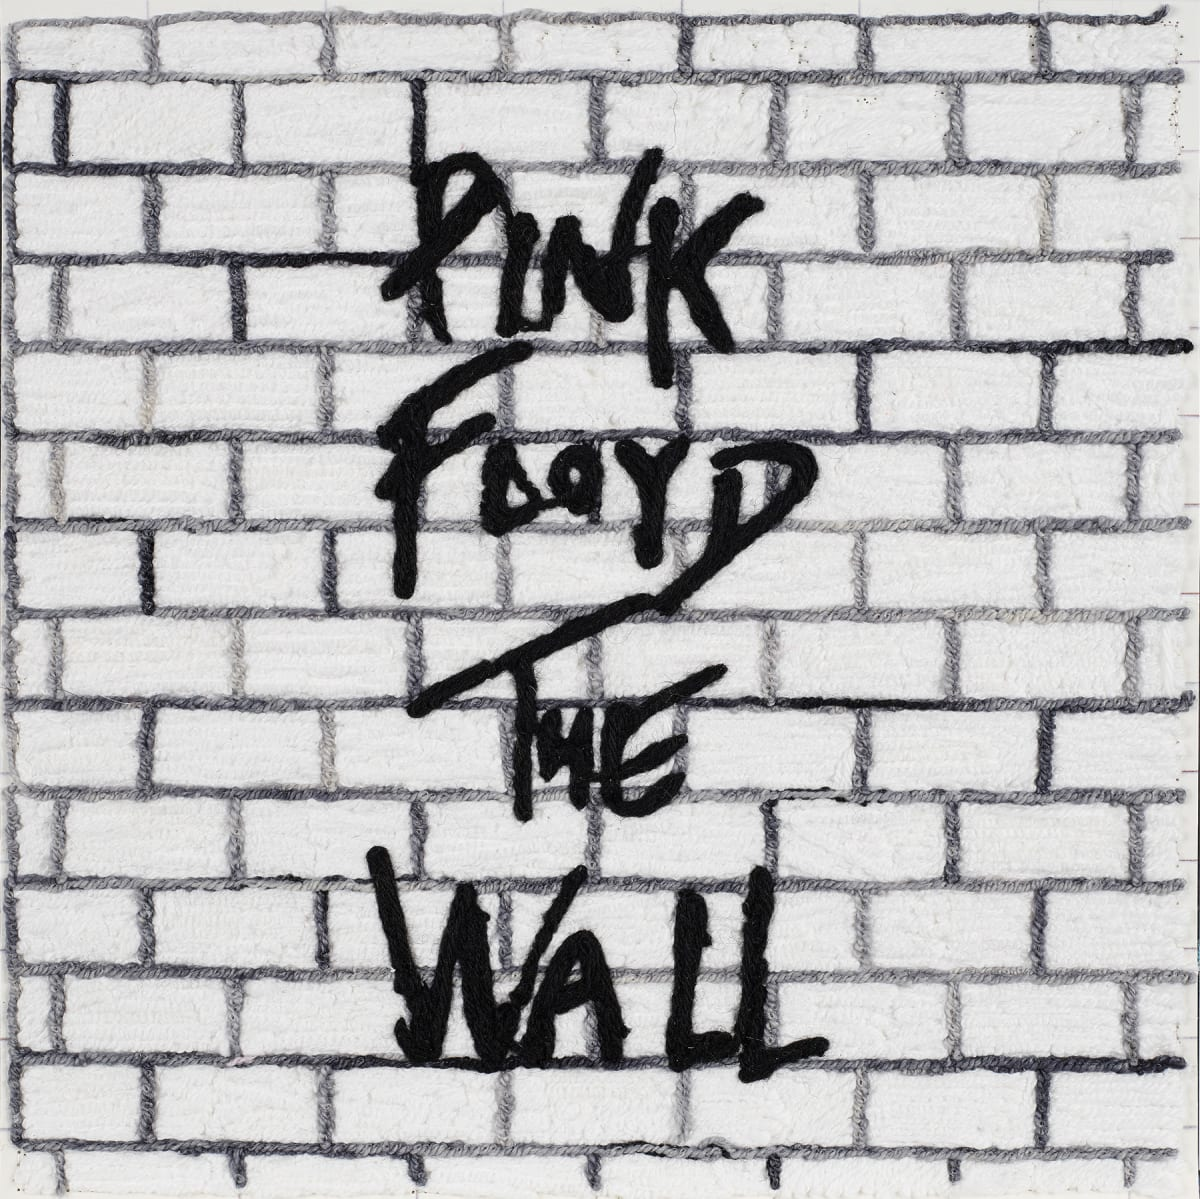 Stephen Wilson, The Wall, Pink Floyd , 2019